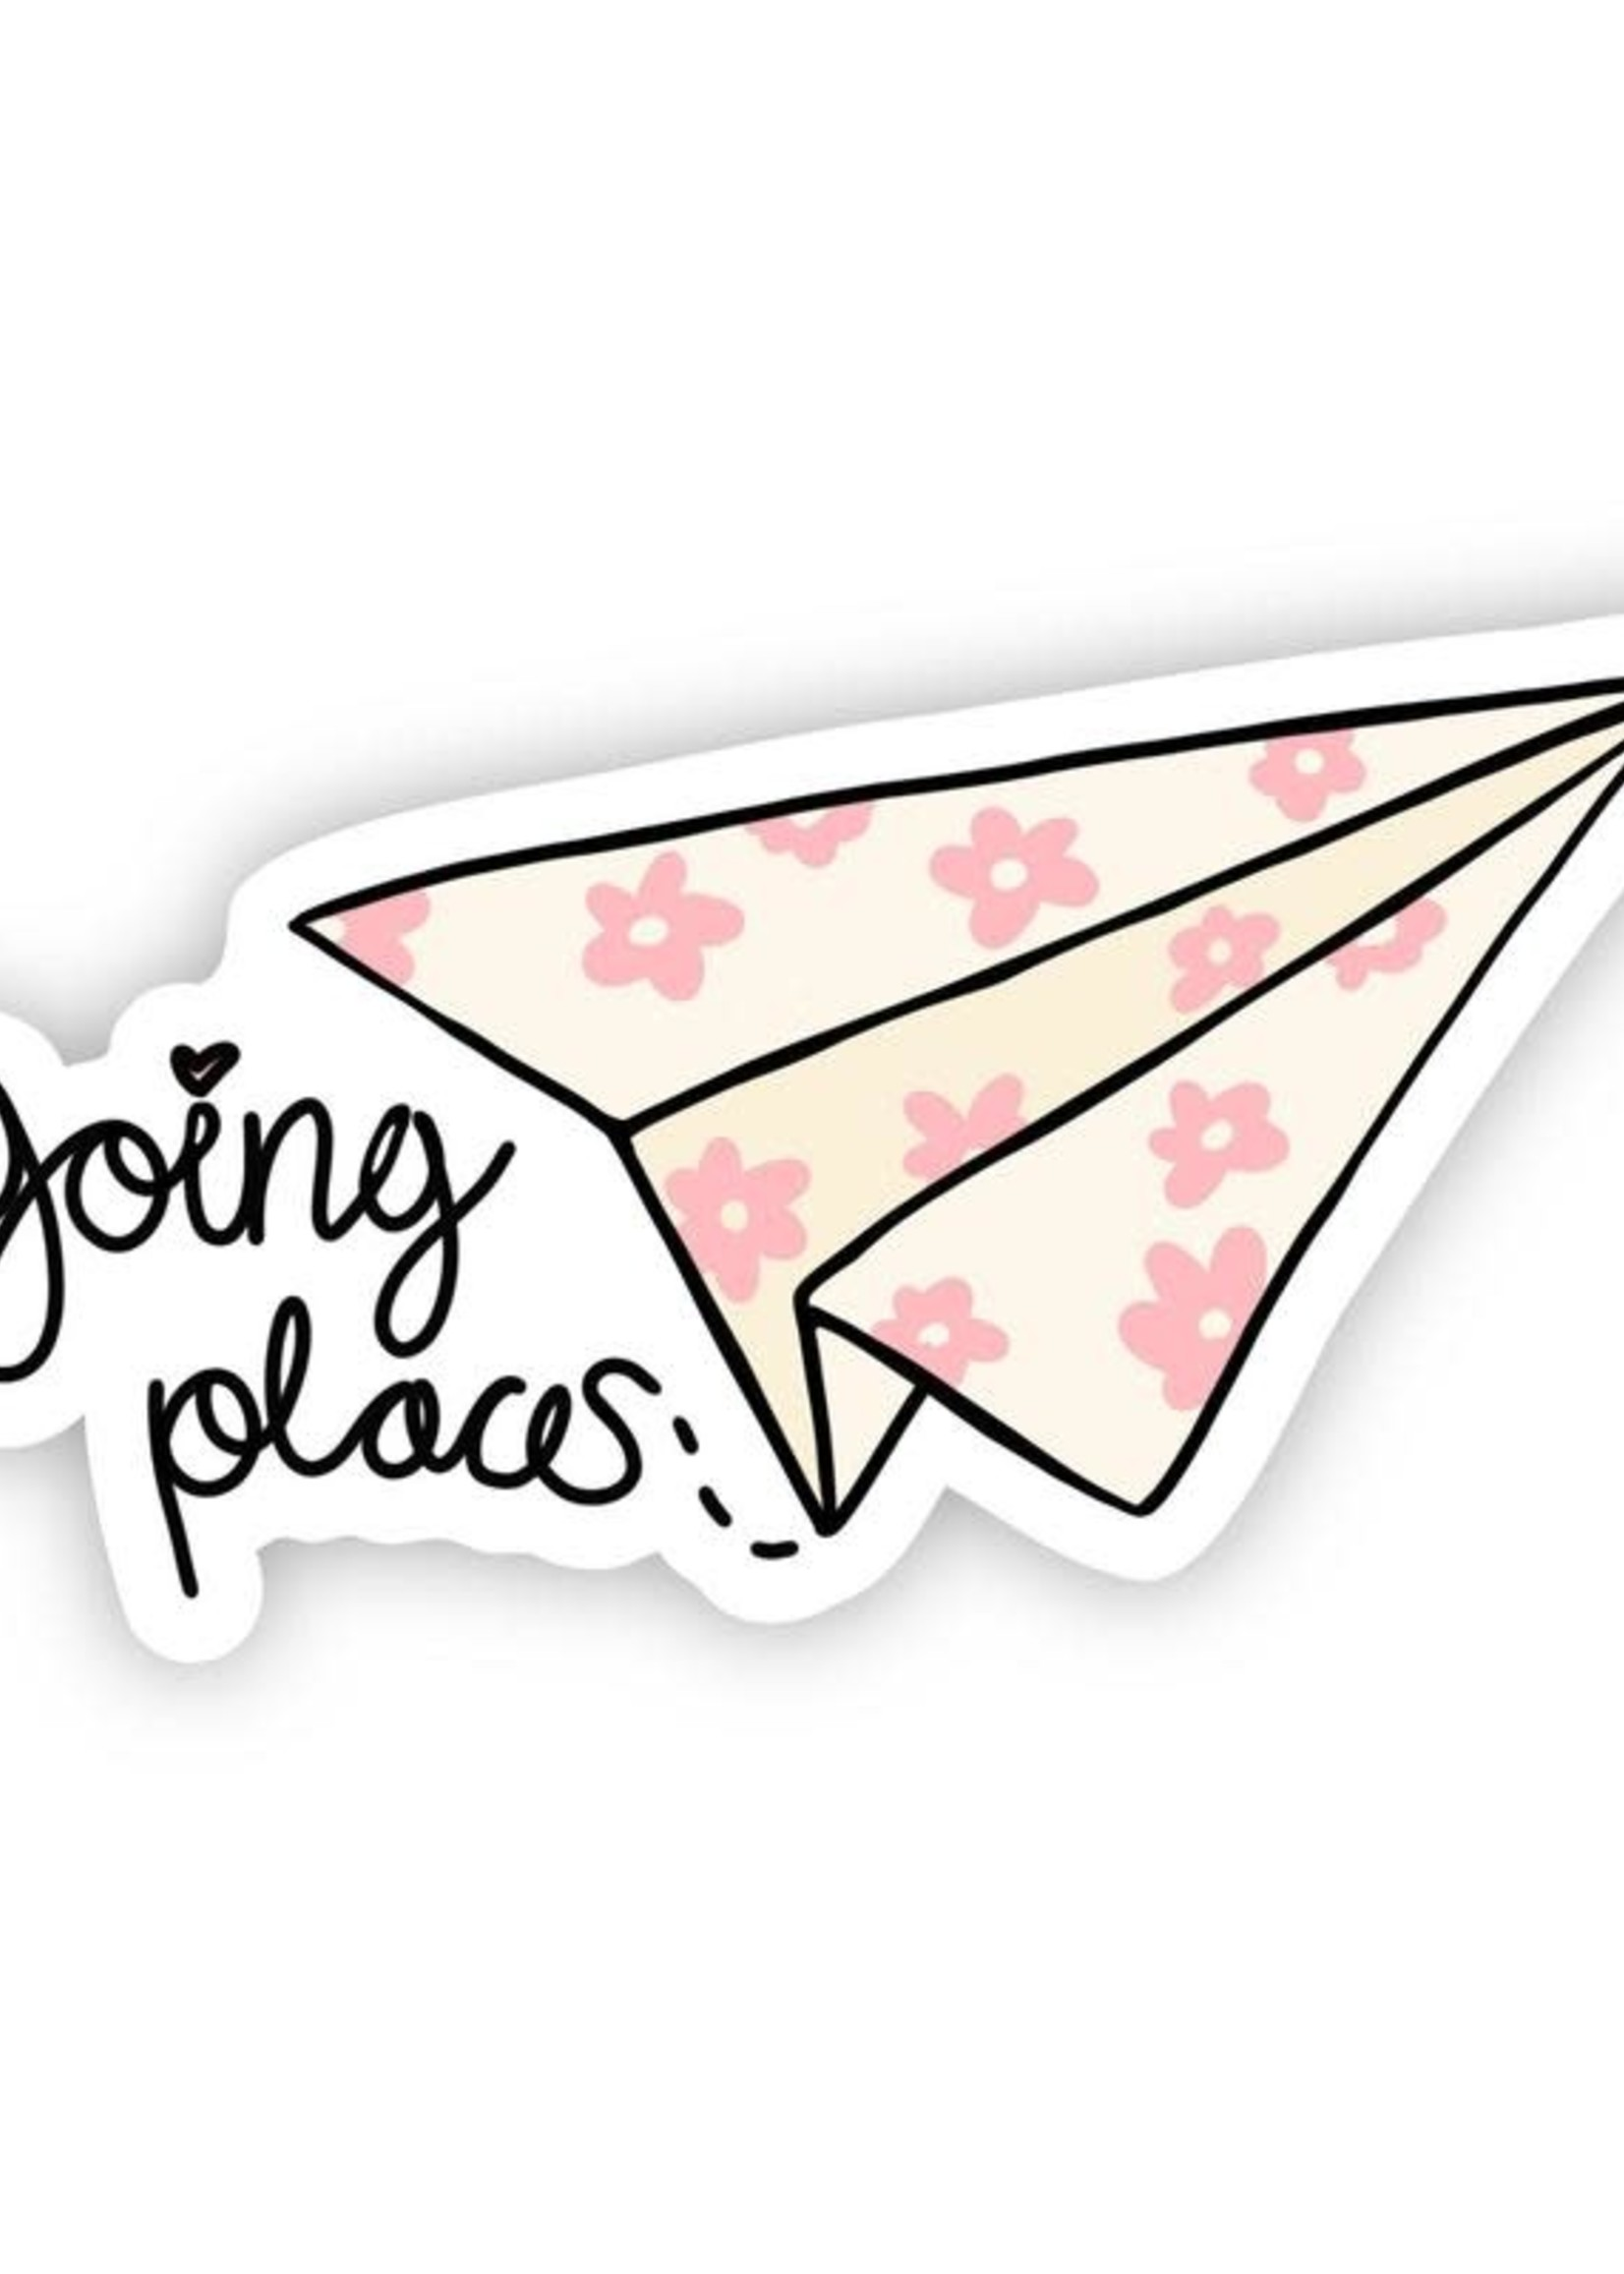 Going Places Paper Airplane Sticker